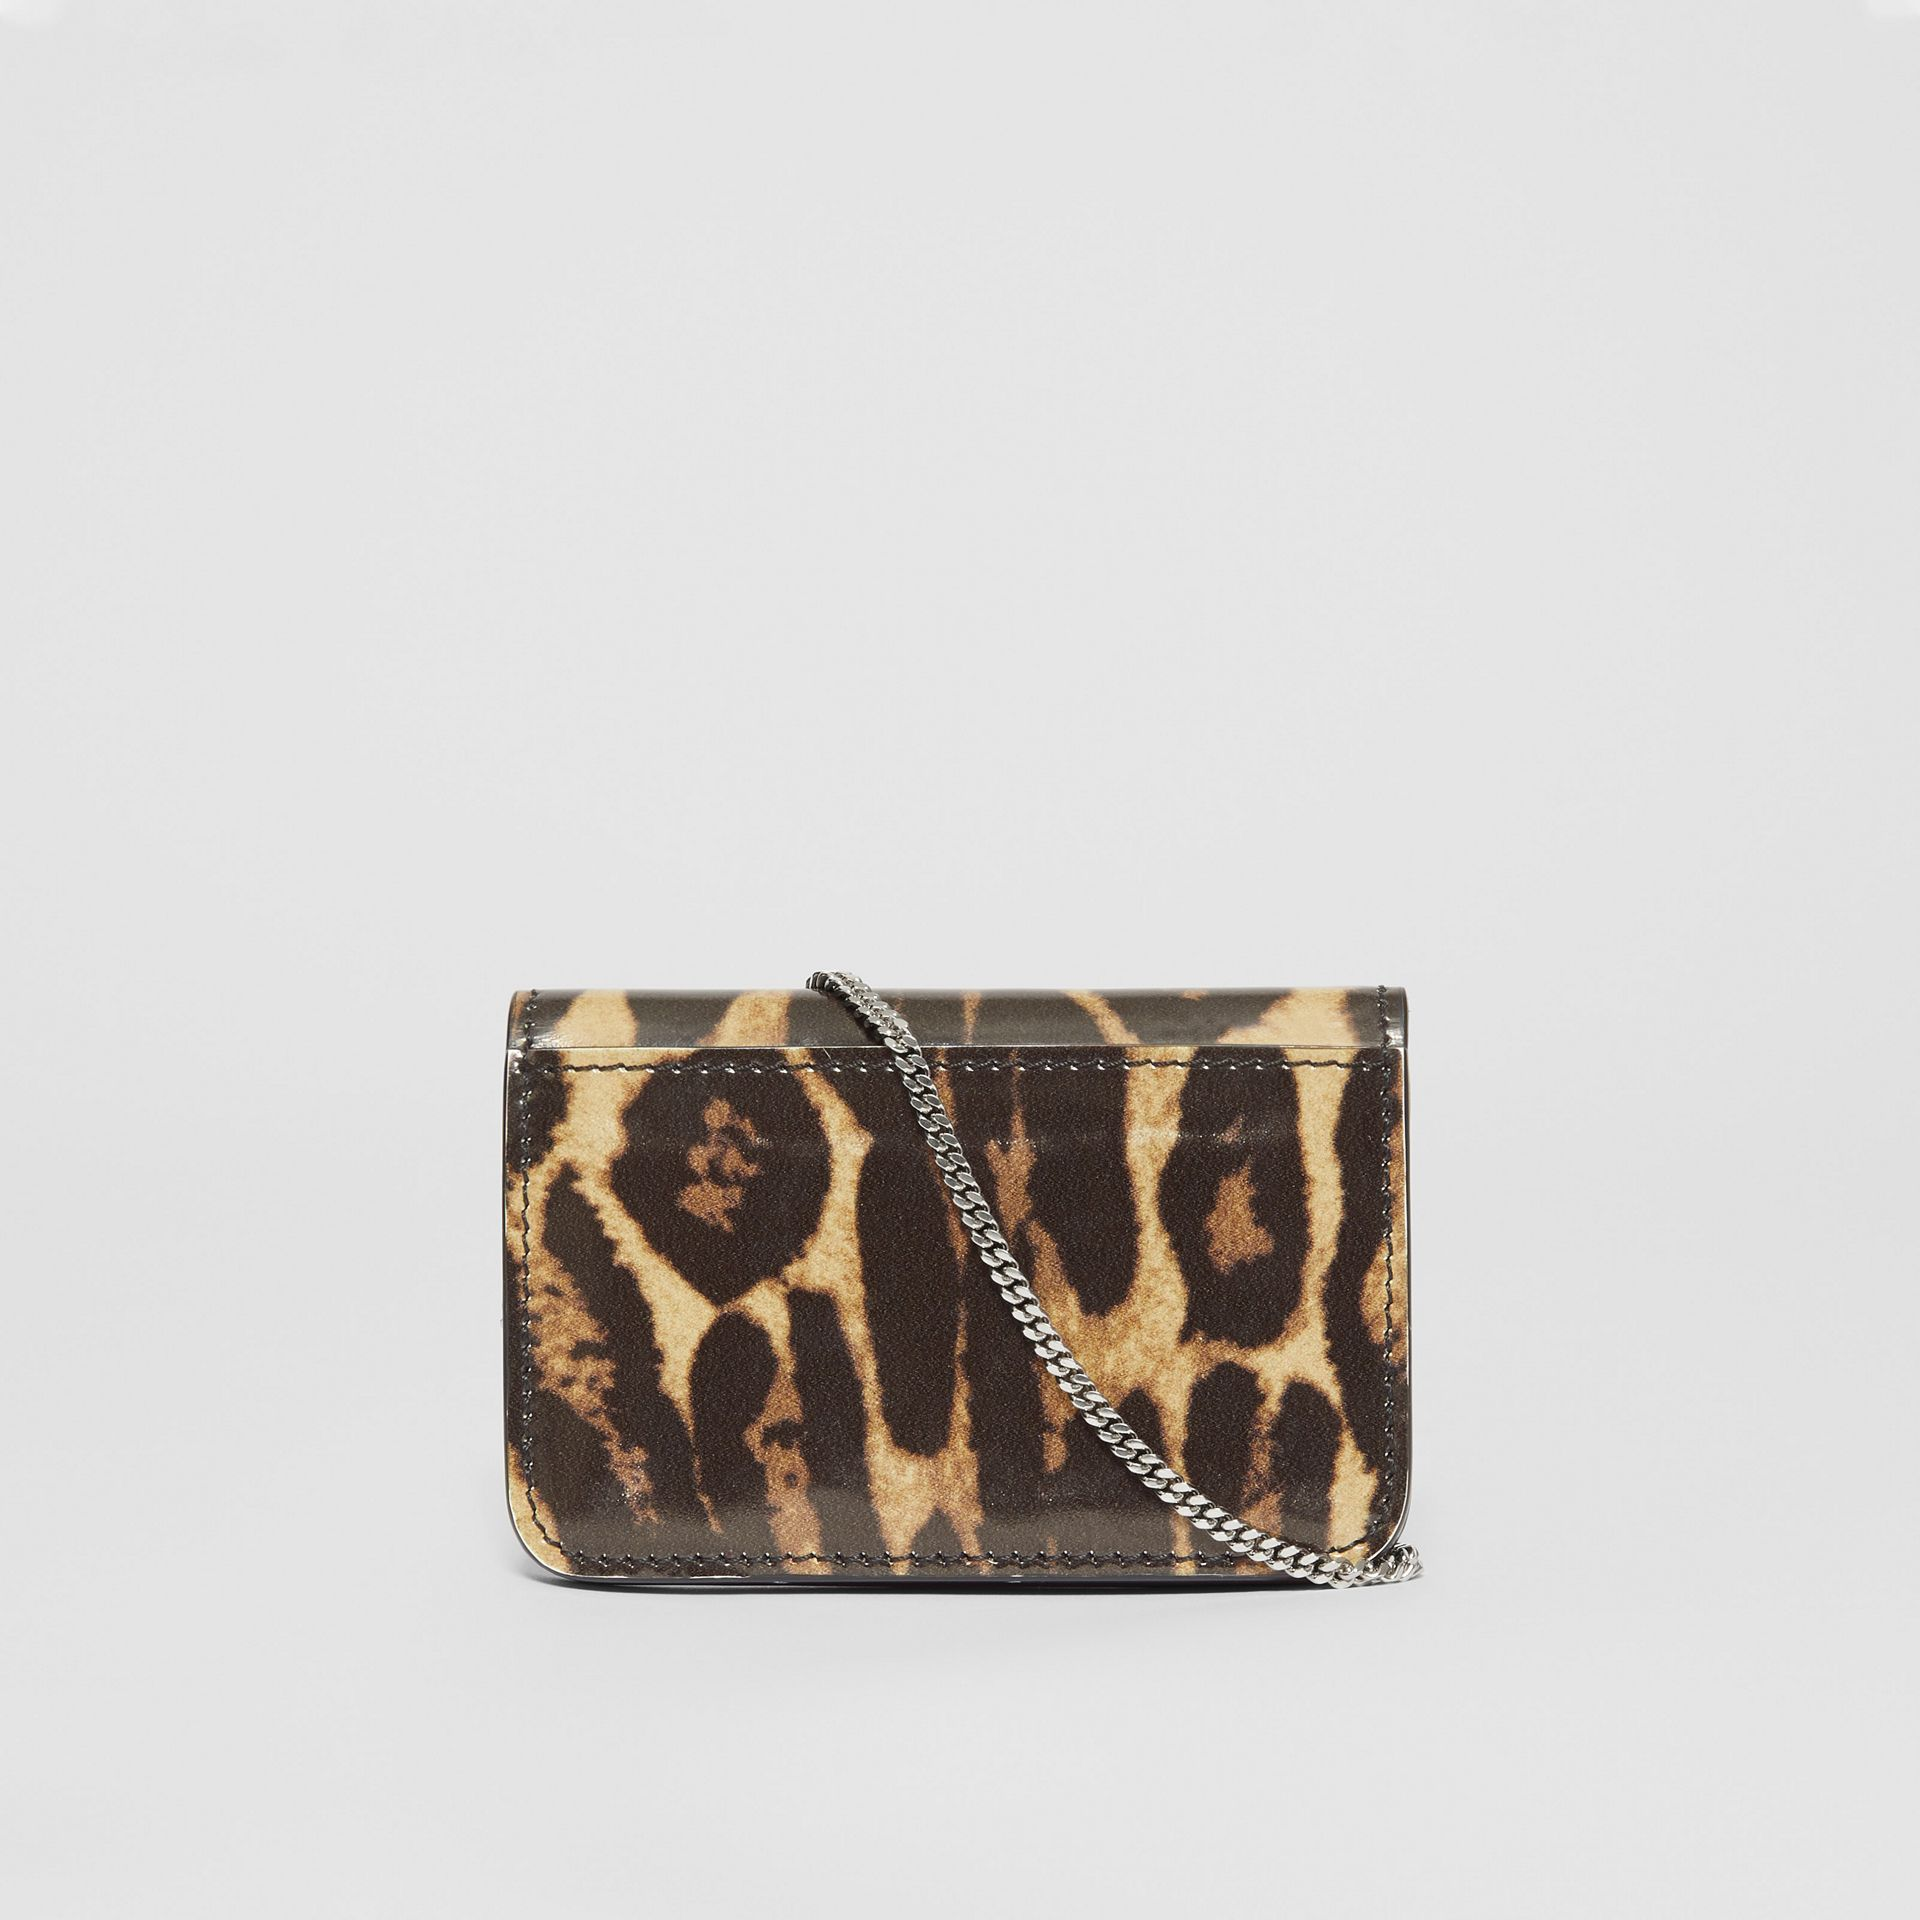 Leopard Print Leather Card Case with Chain Strap in Dark Mustard - Women | Burberry United States - gallery image 7